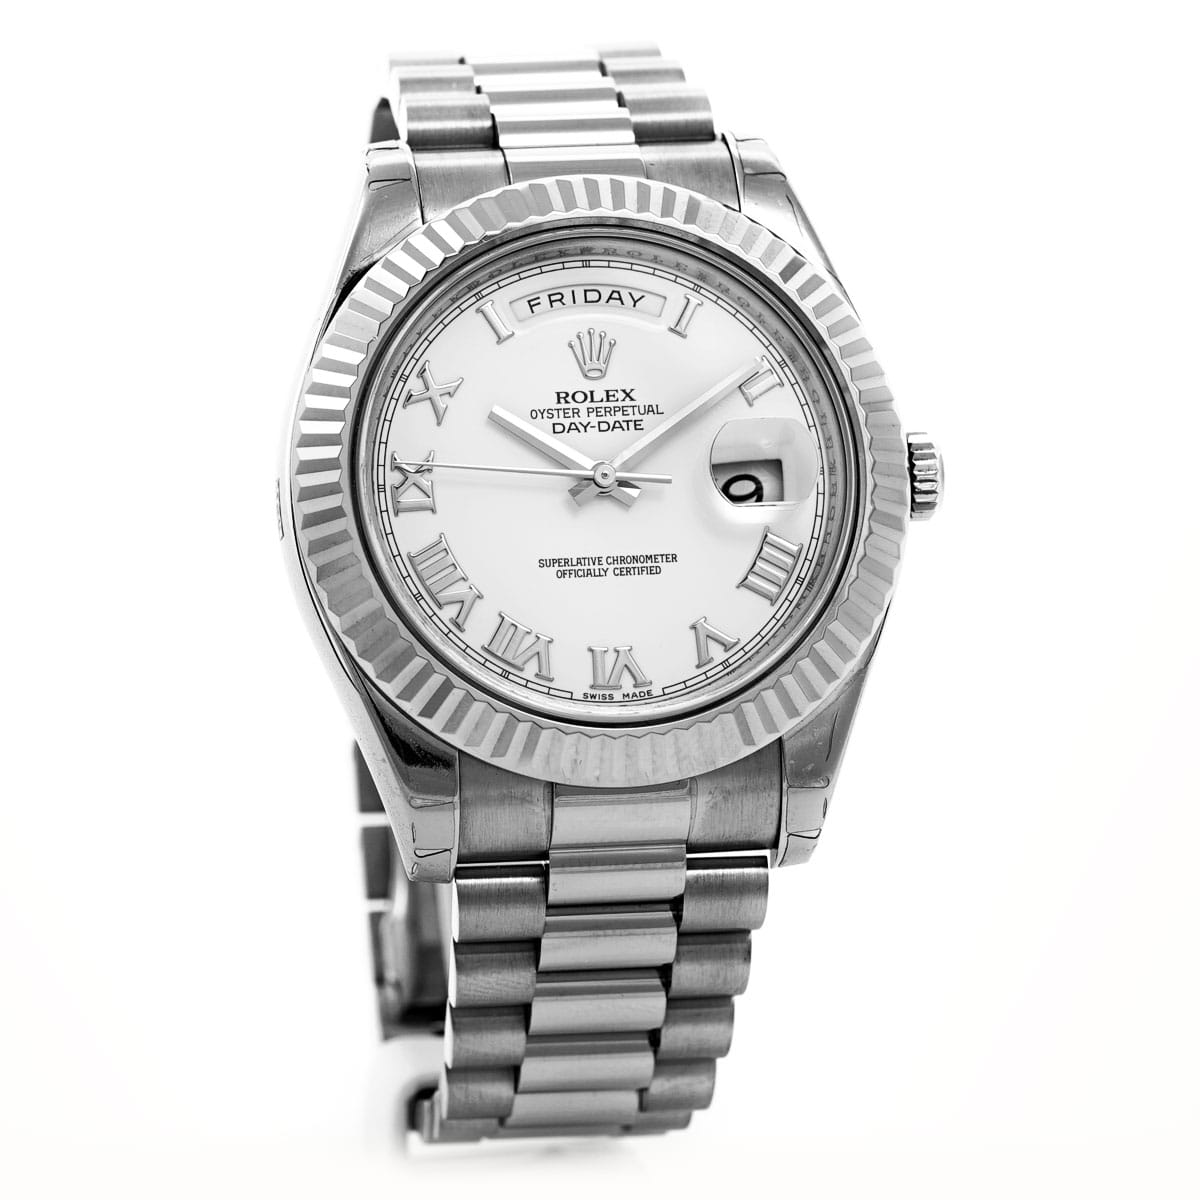 Rolex Day Date Oyster , cheap watches mgc,gas.com